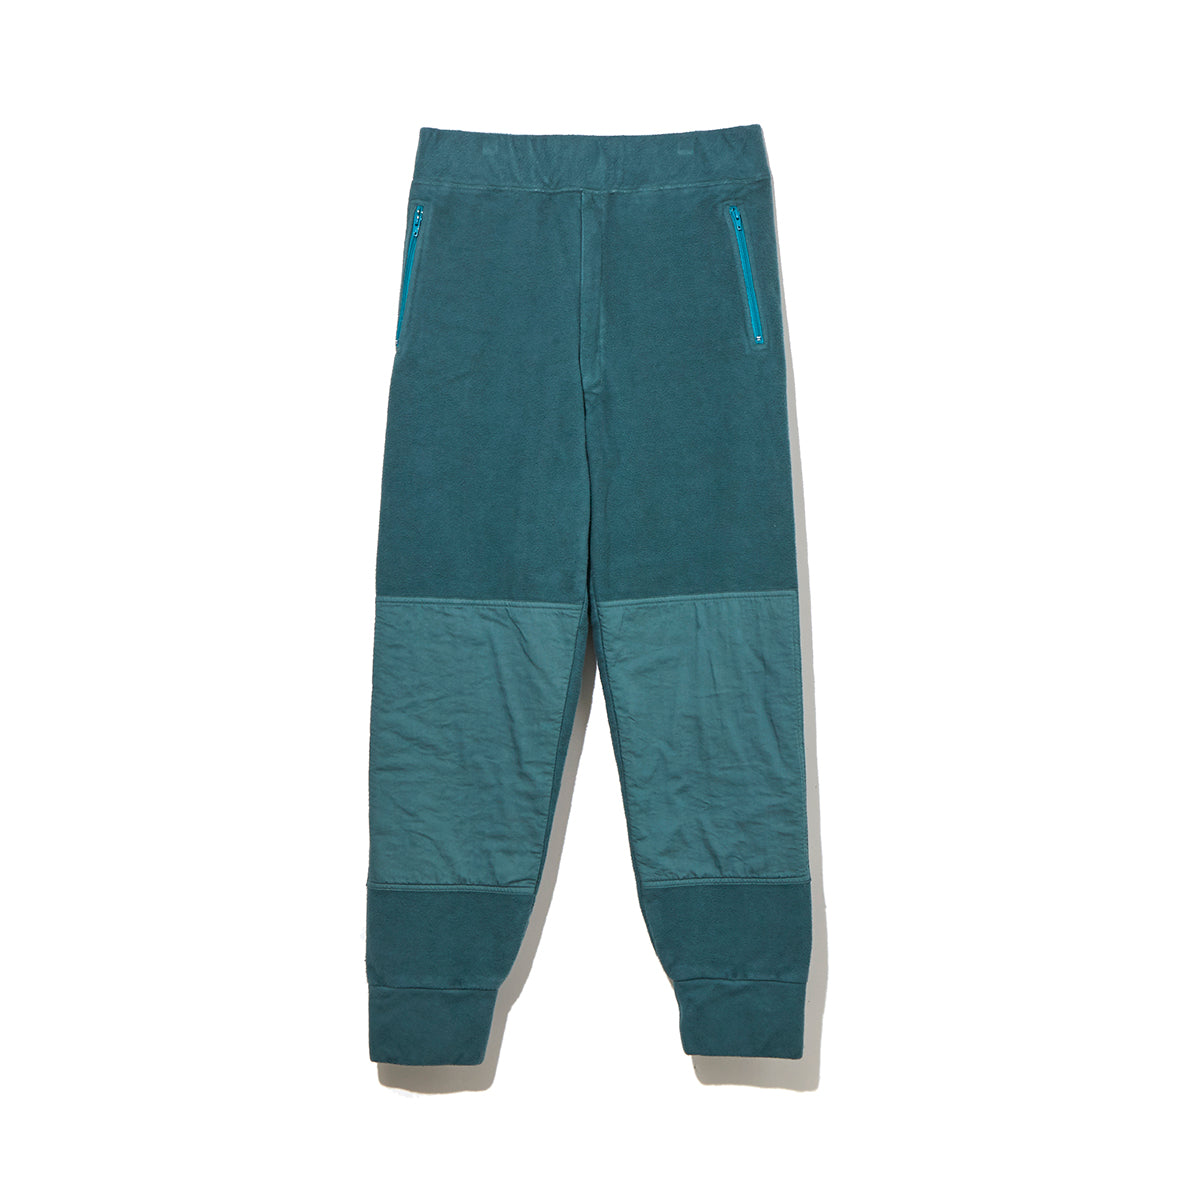 FLEECE PANTS / GREEN (21A-NSA-PT-06)